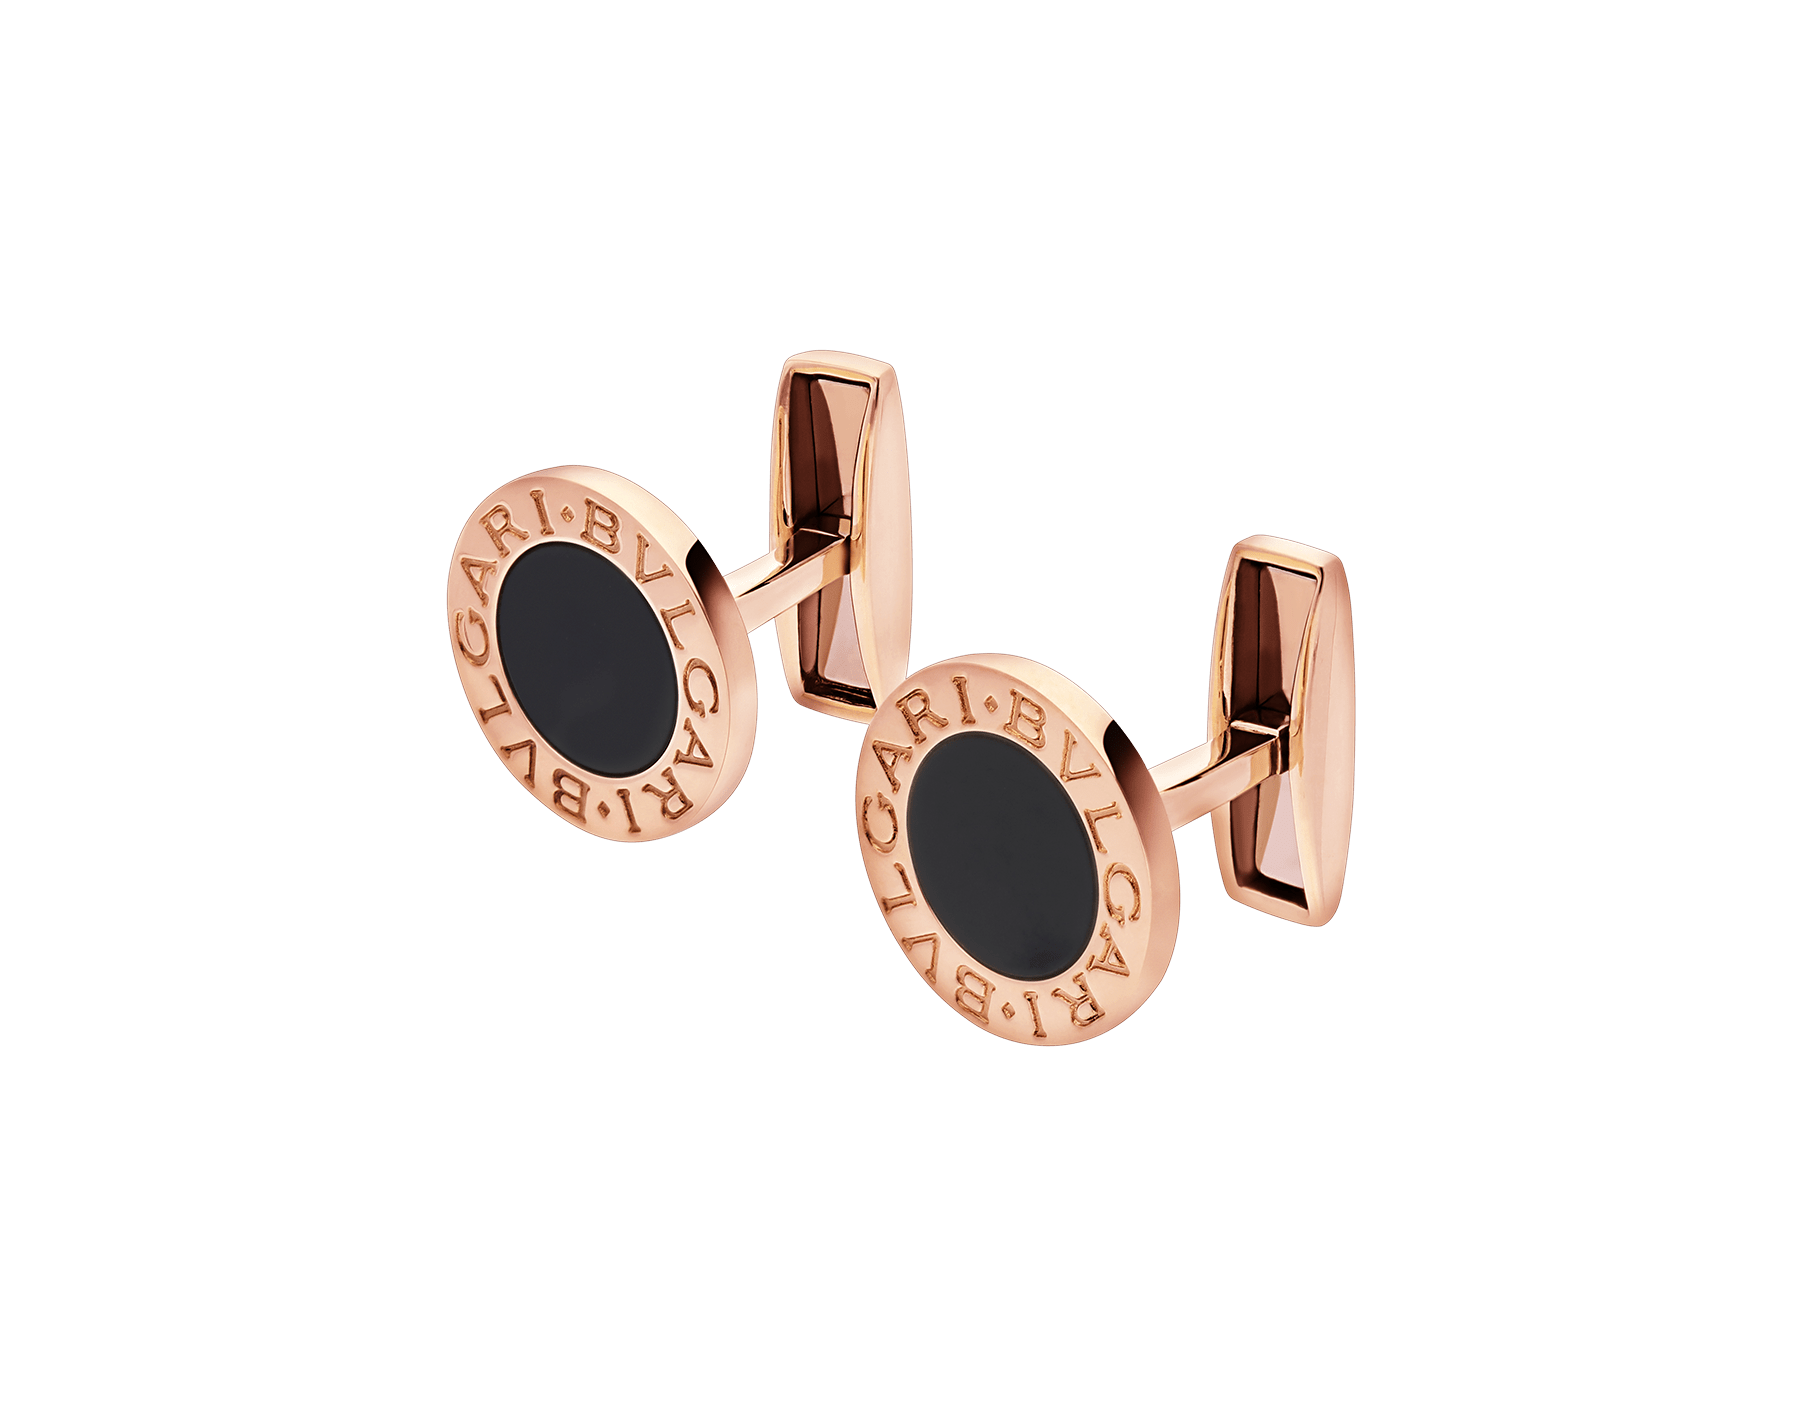 BVLGARI BVLGARI 18kt rose gold cufflinks set with black onyx elements 344429 image 2